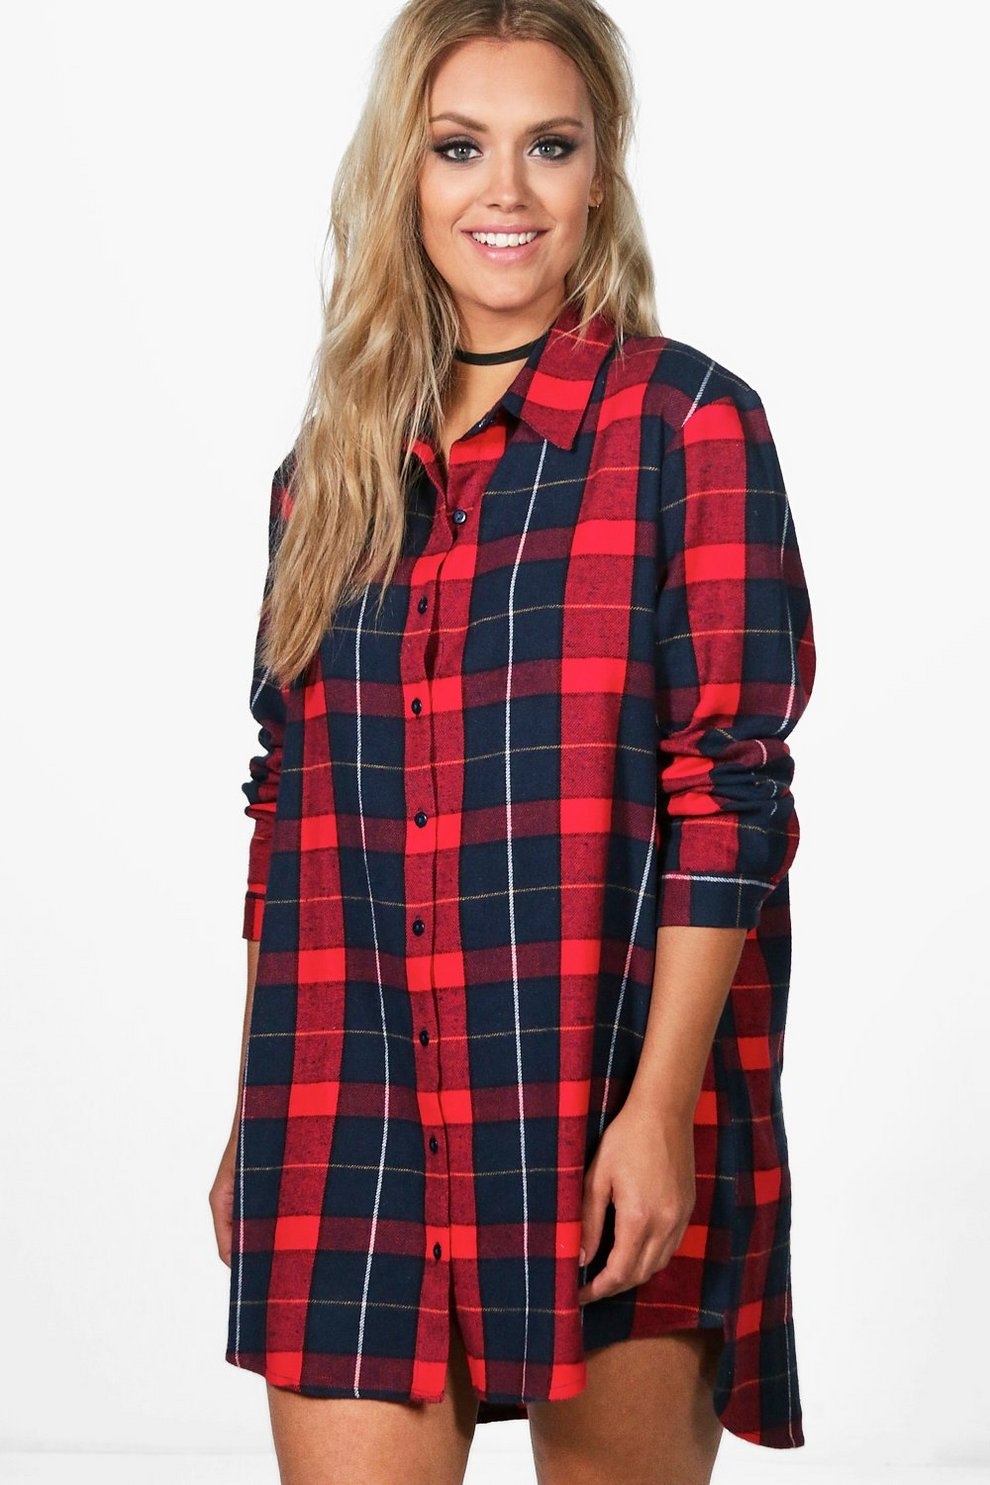 100% Original For Sale Buy Cheap How Much Boohoo Oversized Check Shirt Dress Buy Cheap Official Free Shipping Cheap Real DS26ox